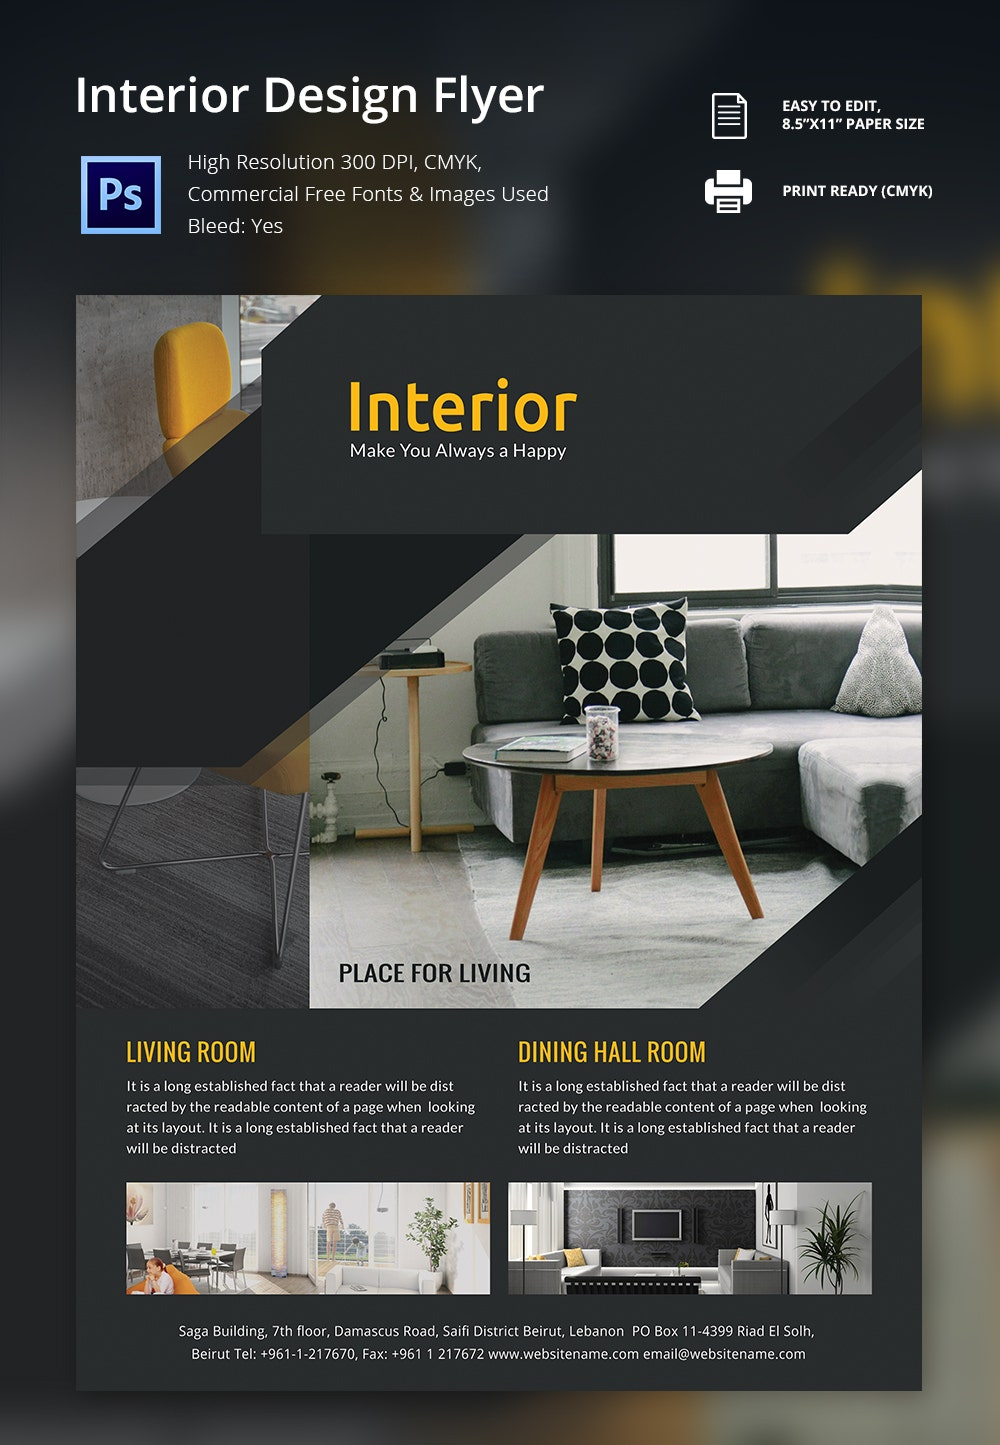 Interior design flyer template 25 free psd ai vector for Interior design layout templates free